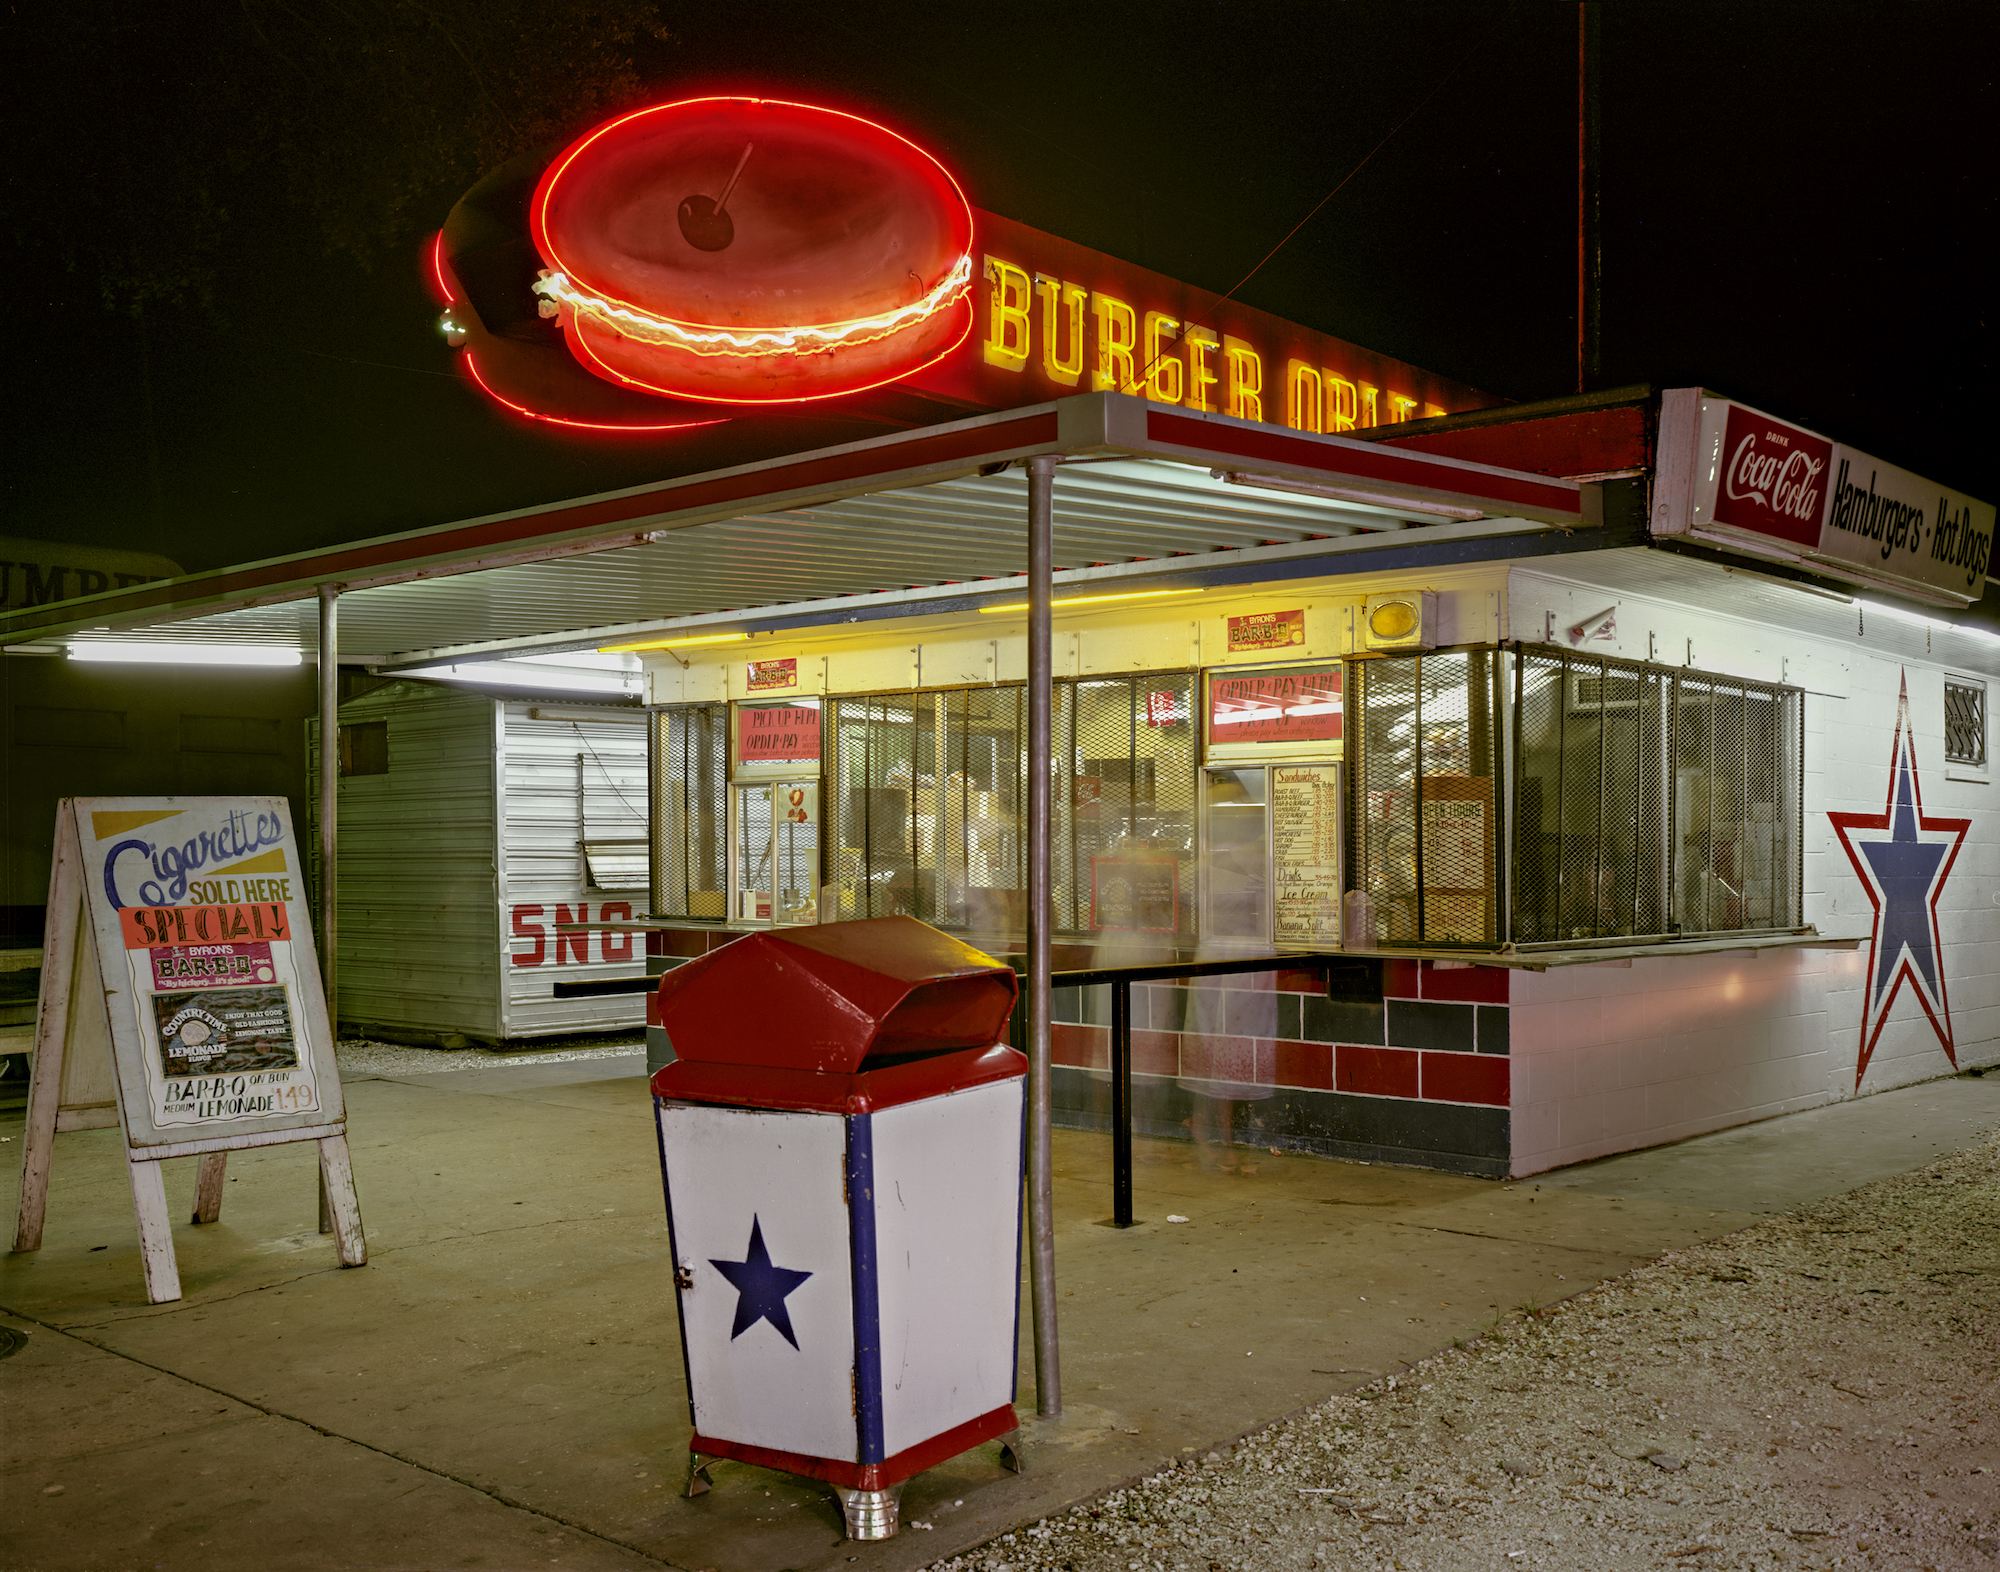 Jim Dow, Burger Orleans Drive-In at Night. LA 46, New Orleans, Louisiana, 1980. Courtesy the artist